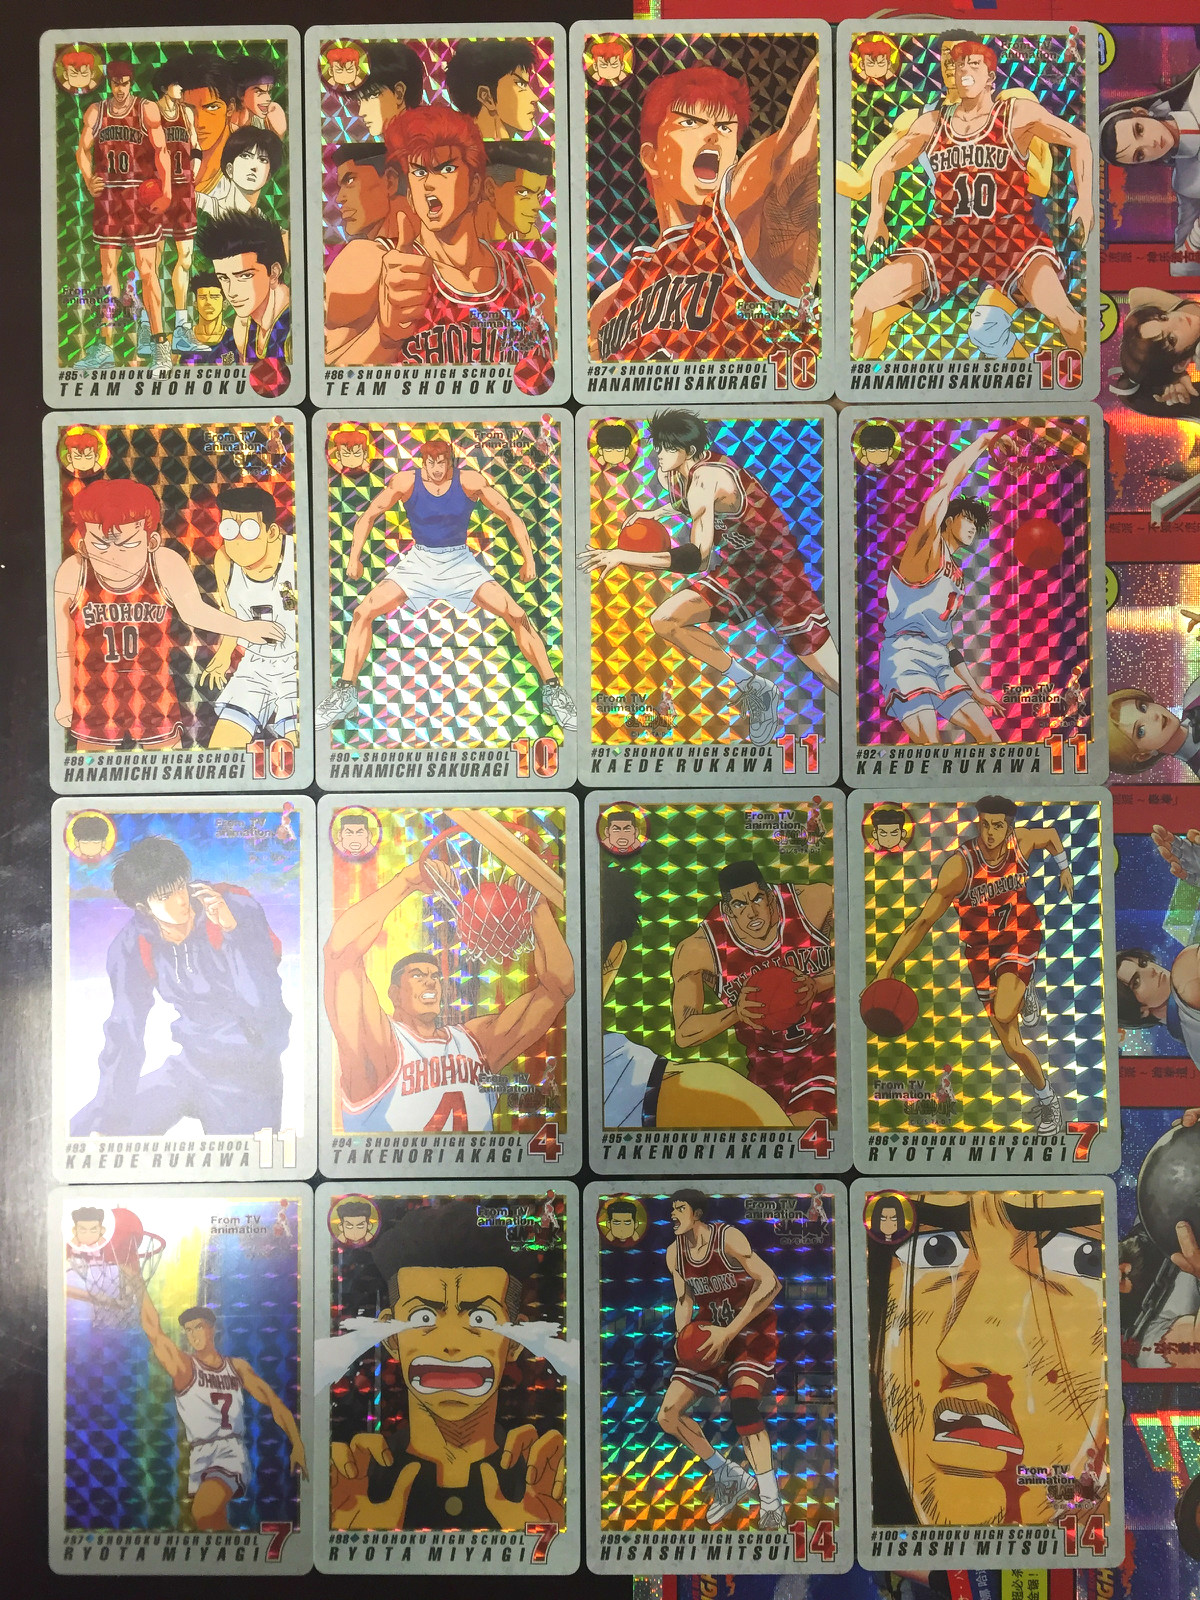 46pcs/set Slam Dunk Toys The Third Bomb Is Full Flash Hobbies Hobby Collectibles Game Collection Anime Cards